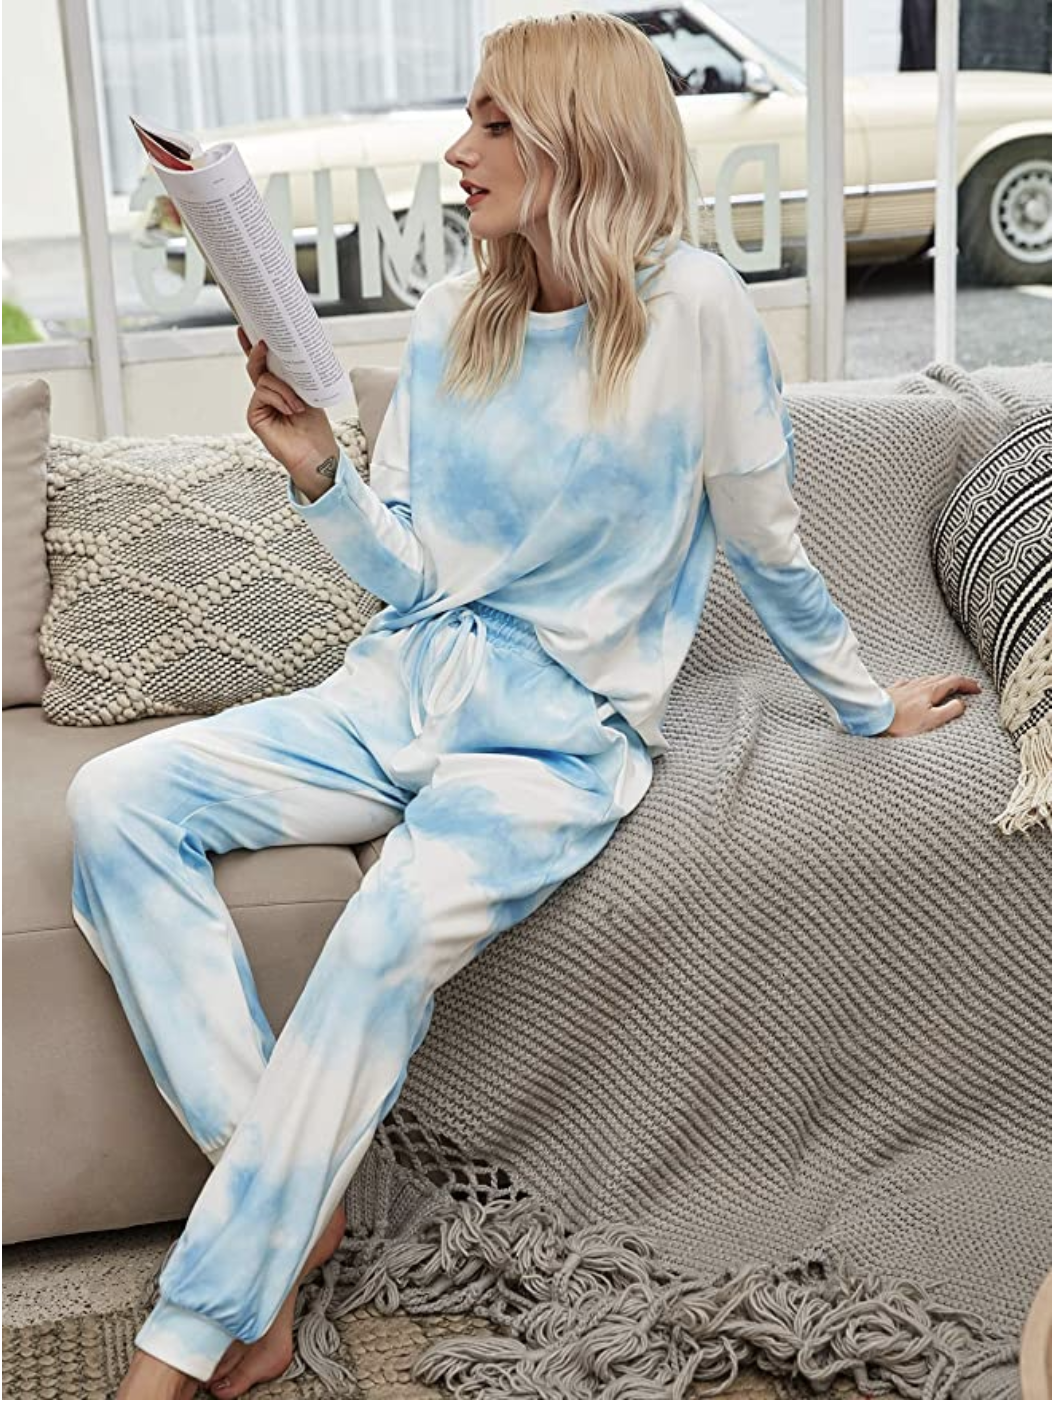 person wearing a tie dye pj set sitting on the couch reading a book